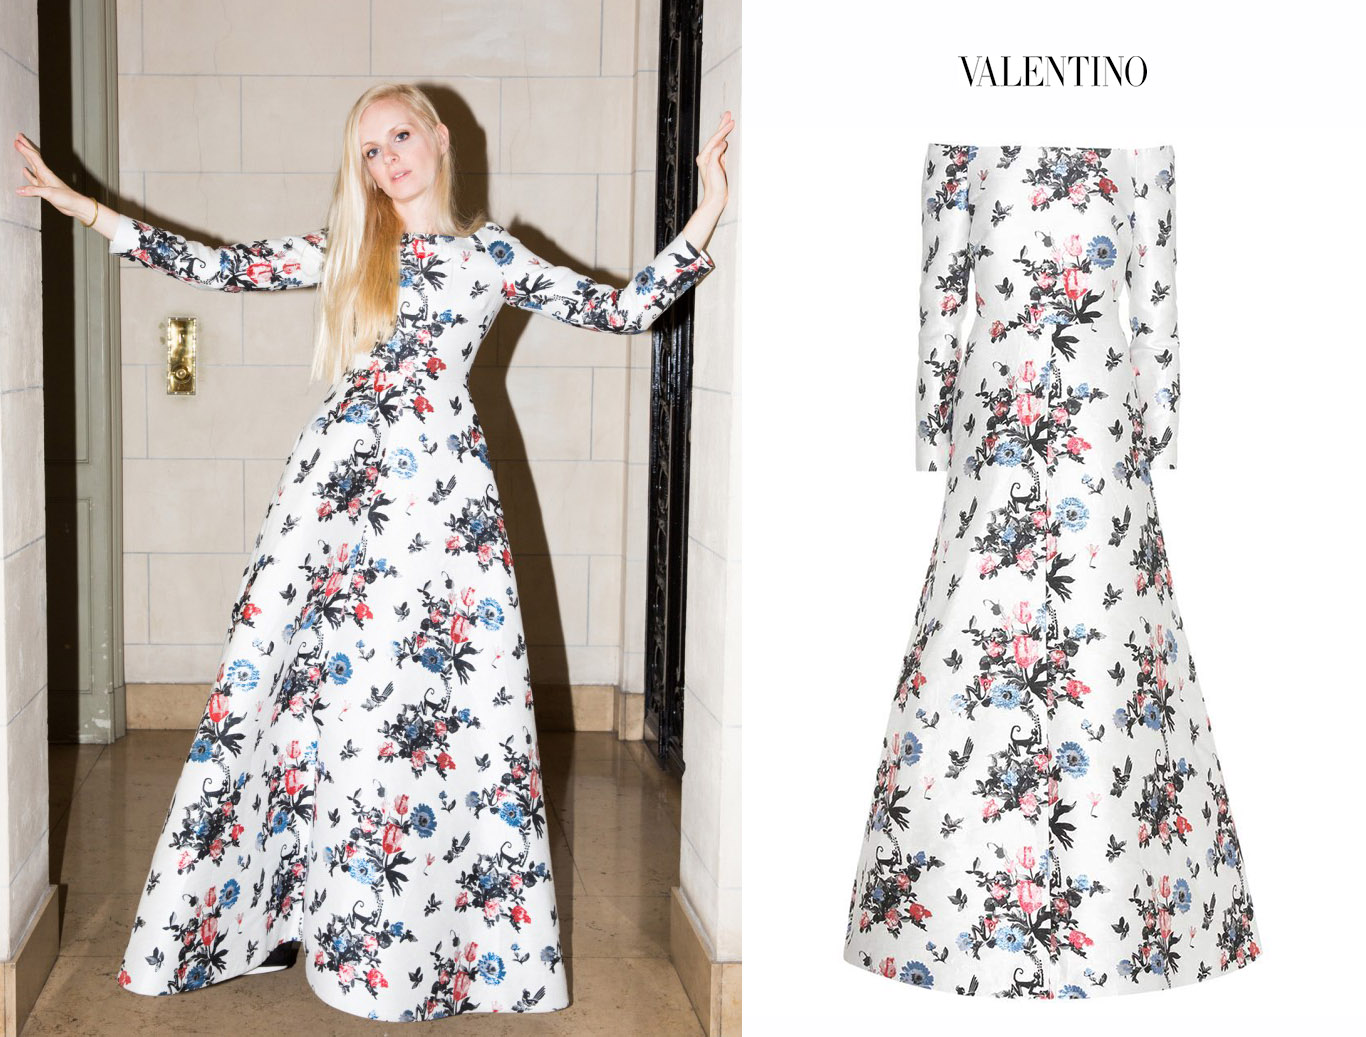 Sofia_Achaval_Coveteur_Revista_Magazine_2018_Vestido_Blanco_Flores_Mangas_Long_Sleeve_Floral_Enchanted_Valentino_Dress_Resort_2017.jpg